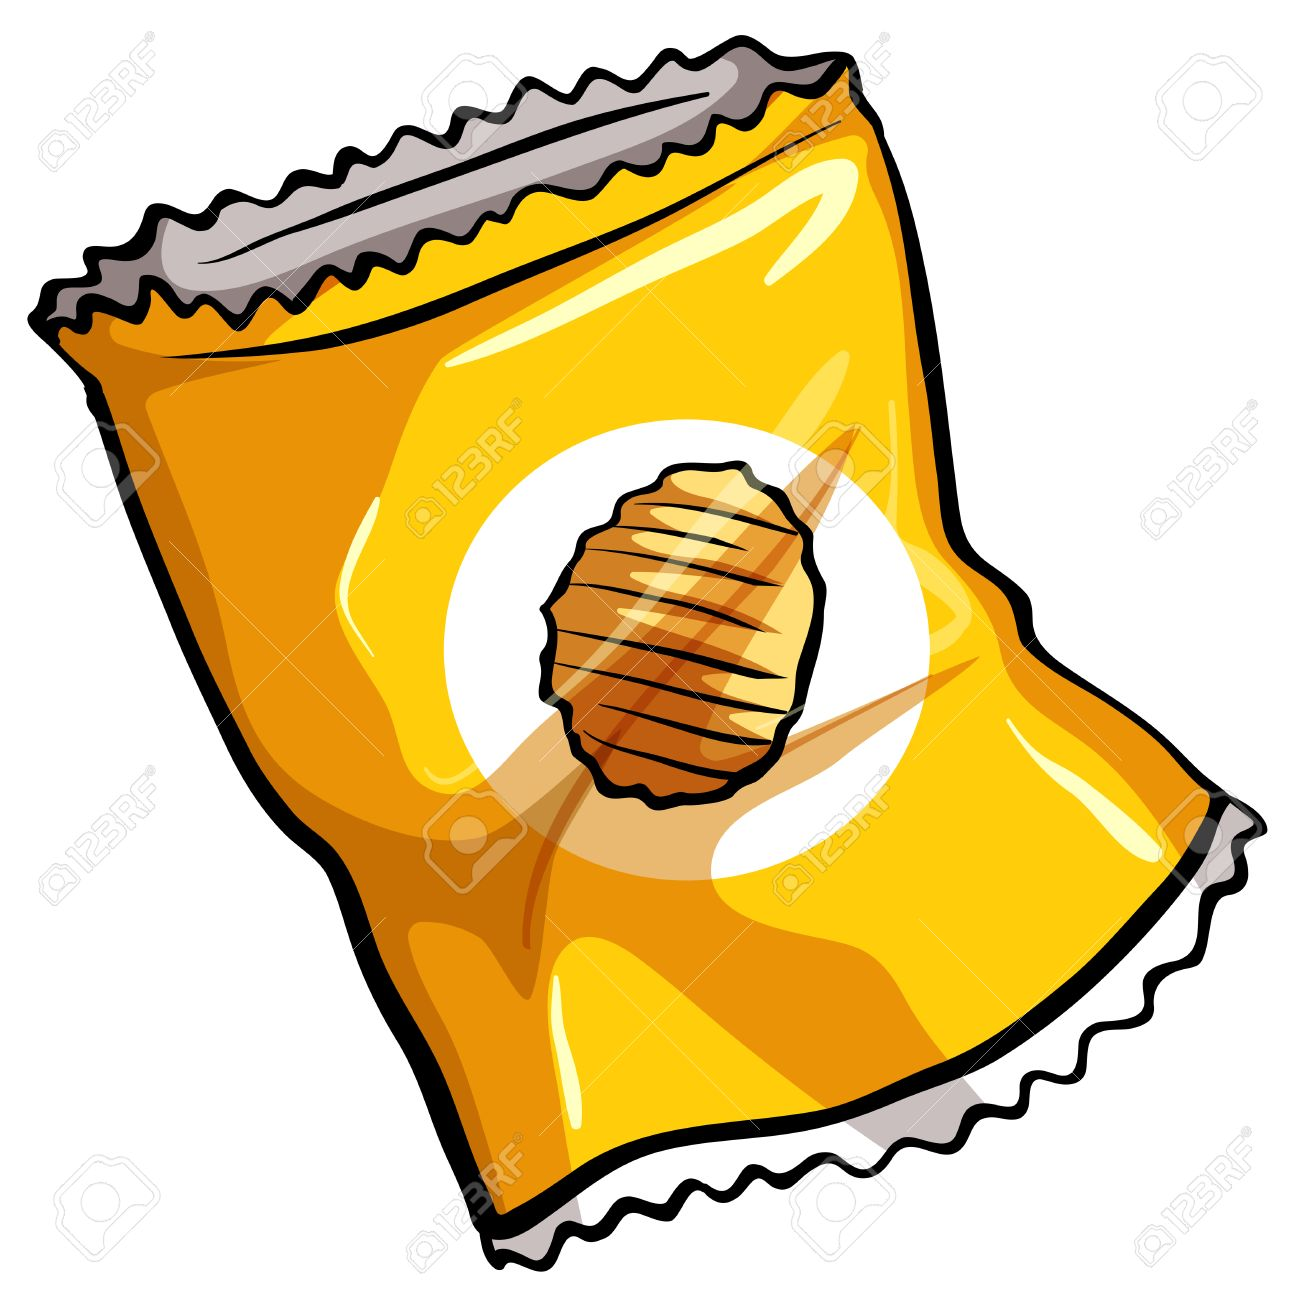 A Pouch Of Potato Chips On A White Background Royalty Free ...